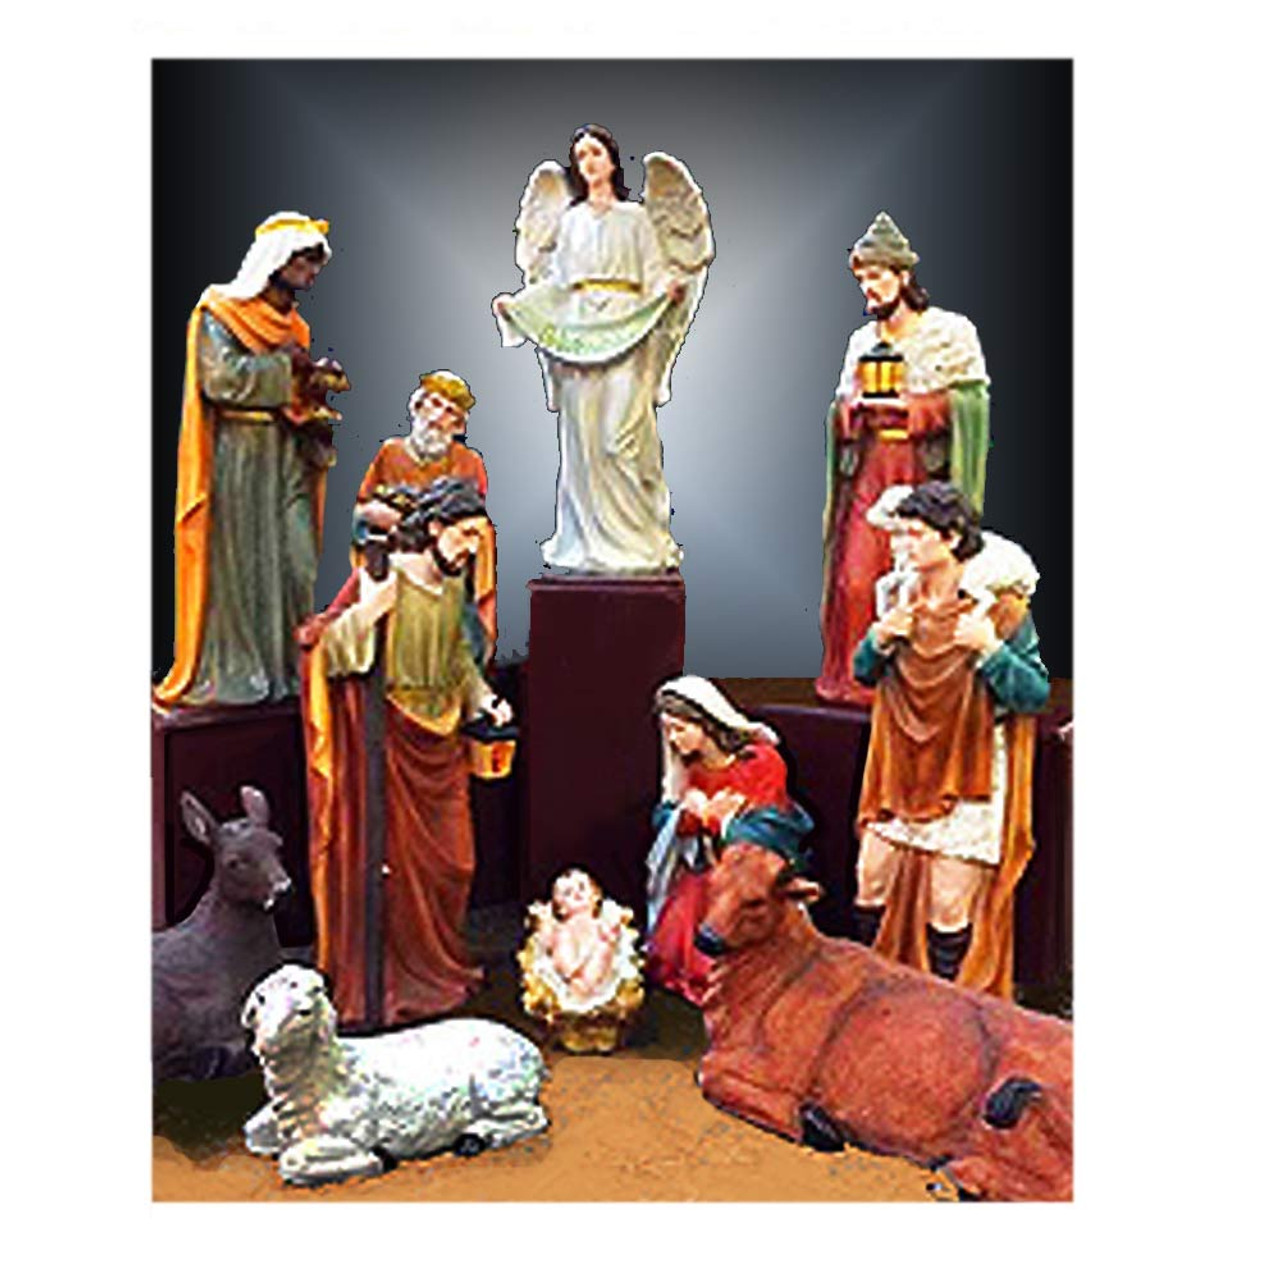 53384 12pc Fiberglass/Resin Nativity Set 32""